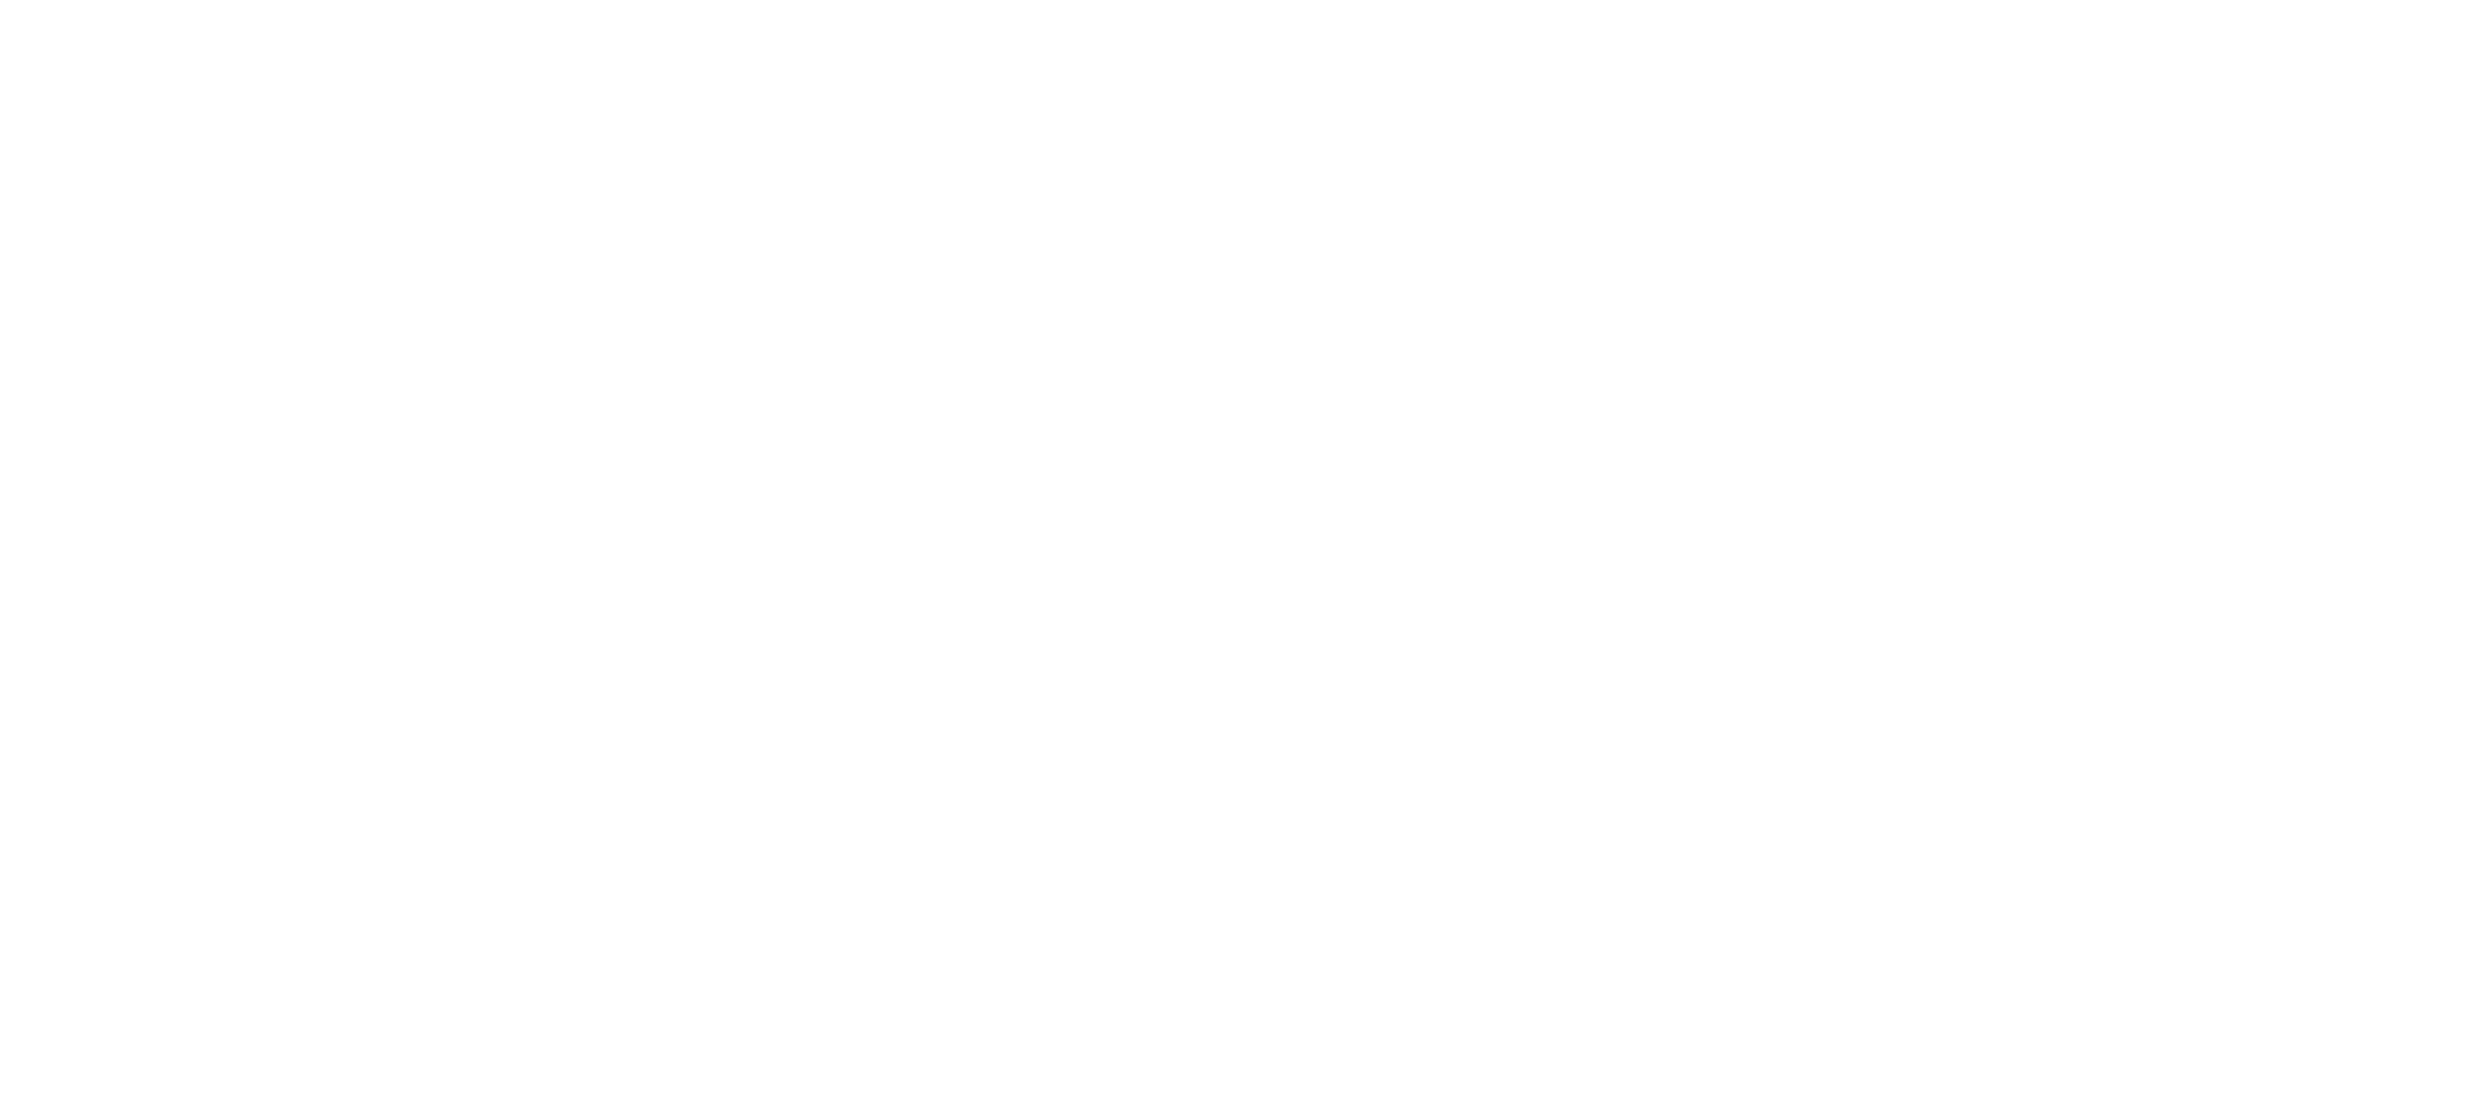 Night With The Opera 2020 - Tokyo - New Date & Venue September 25, 2020 | Blue Bridge, Downtown GR - Learn More